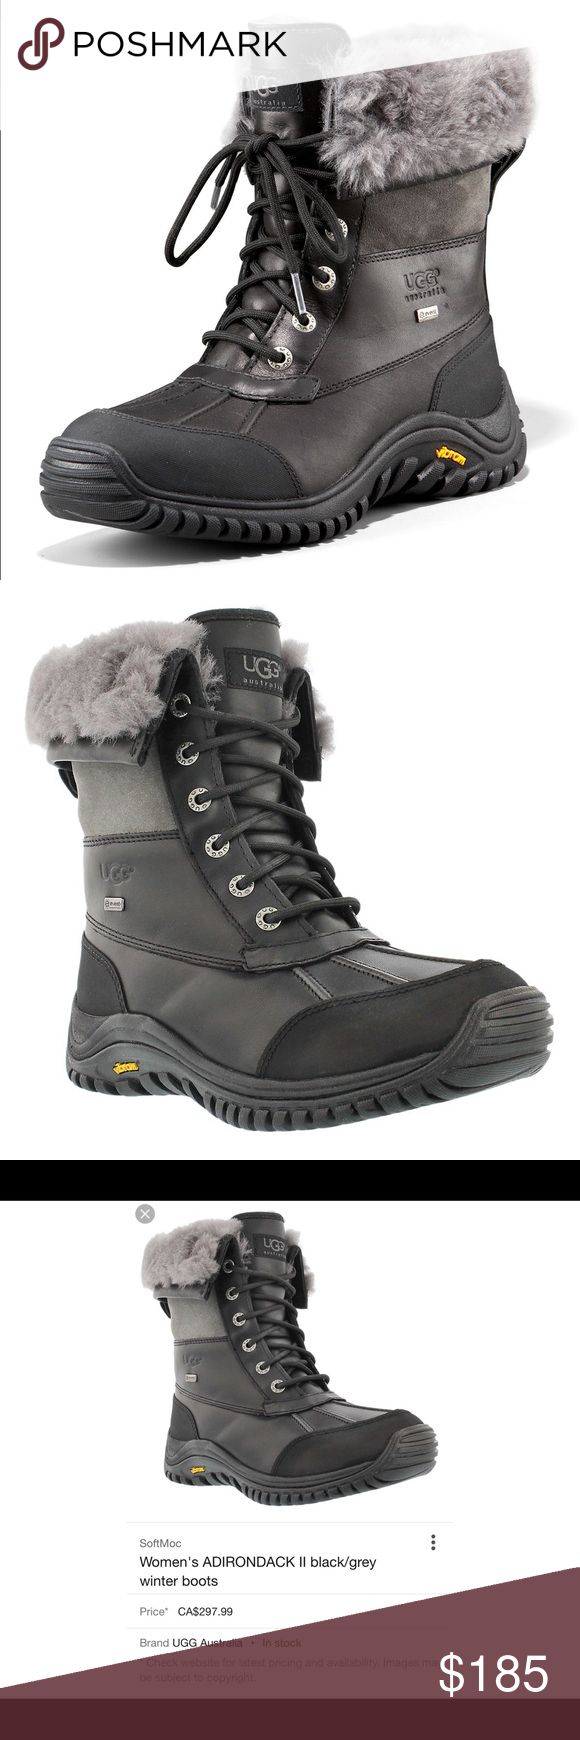 Ugg Australia Vibram Waterproof Size 6 Beautiful UGG waterproof boot in size 6. Literally worn once. The food still has the sticker under on sole area. In excellent condition. Boot is black and gray very comfortable get this for a fraction of the price. No box no returns. Thank you so much for looking. ☺️ UGG Shoes